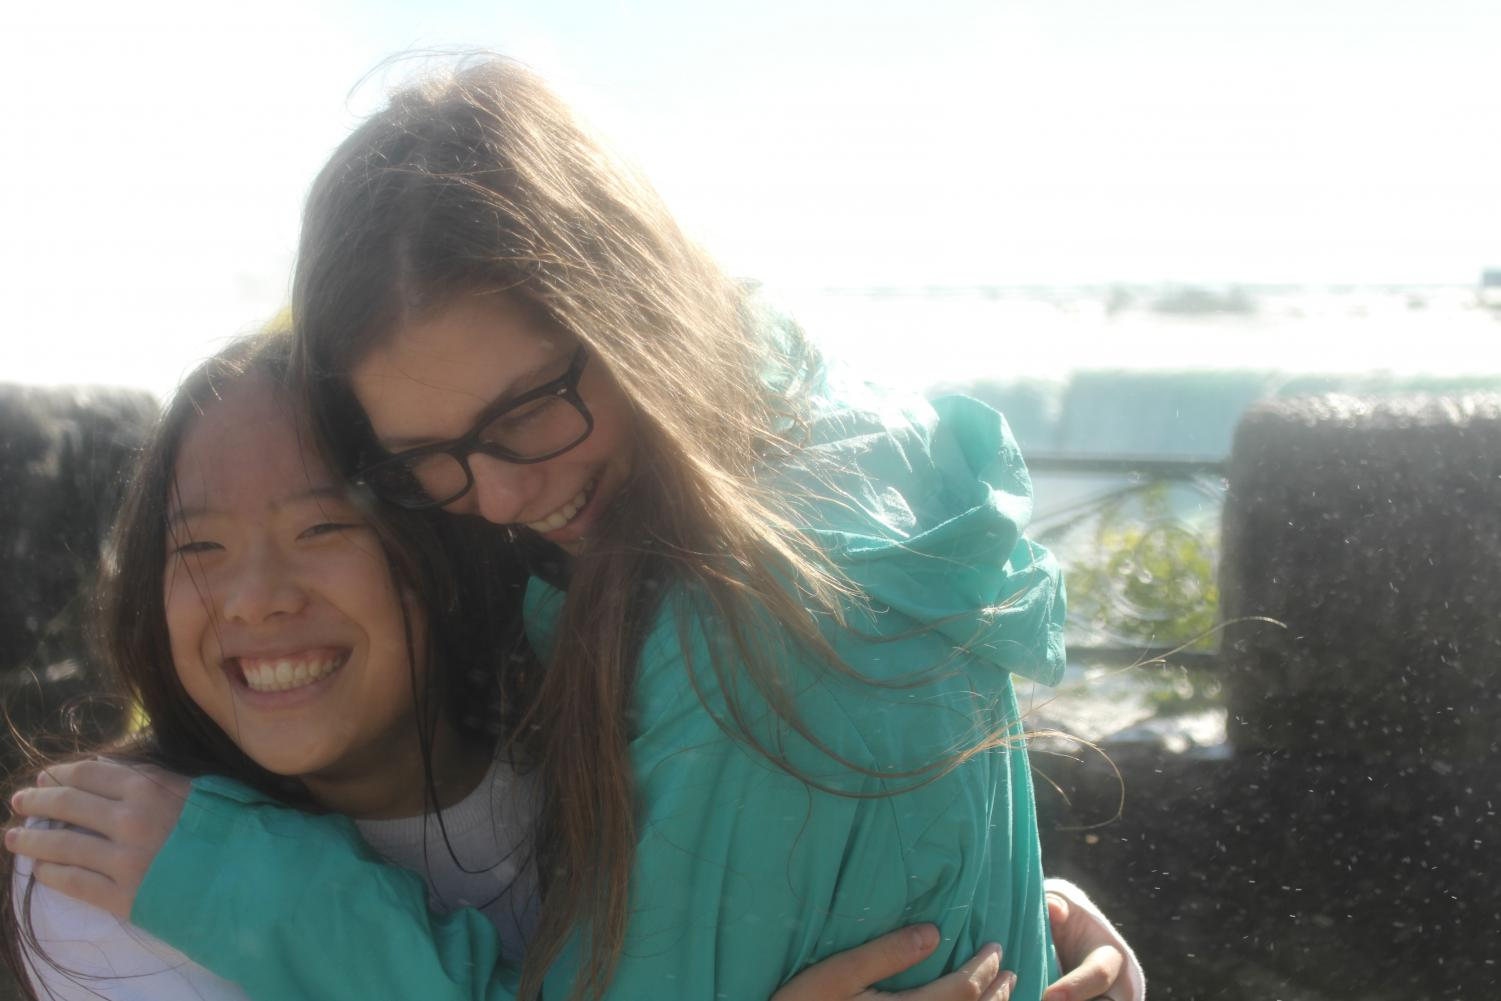 Juniors Sophia Knue and Jeanne DeGraaf huddle for warmth in the cool mist of NIagara Falls.